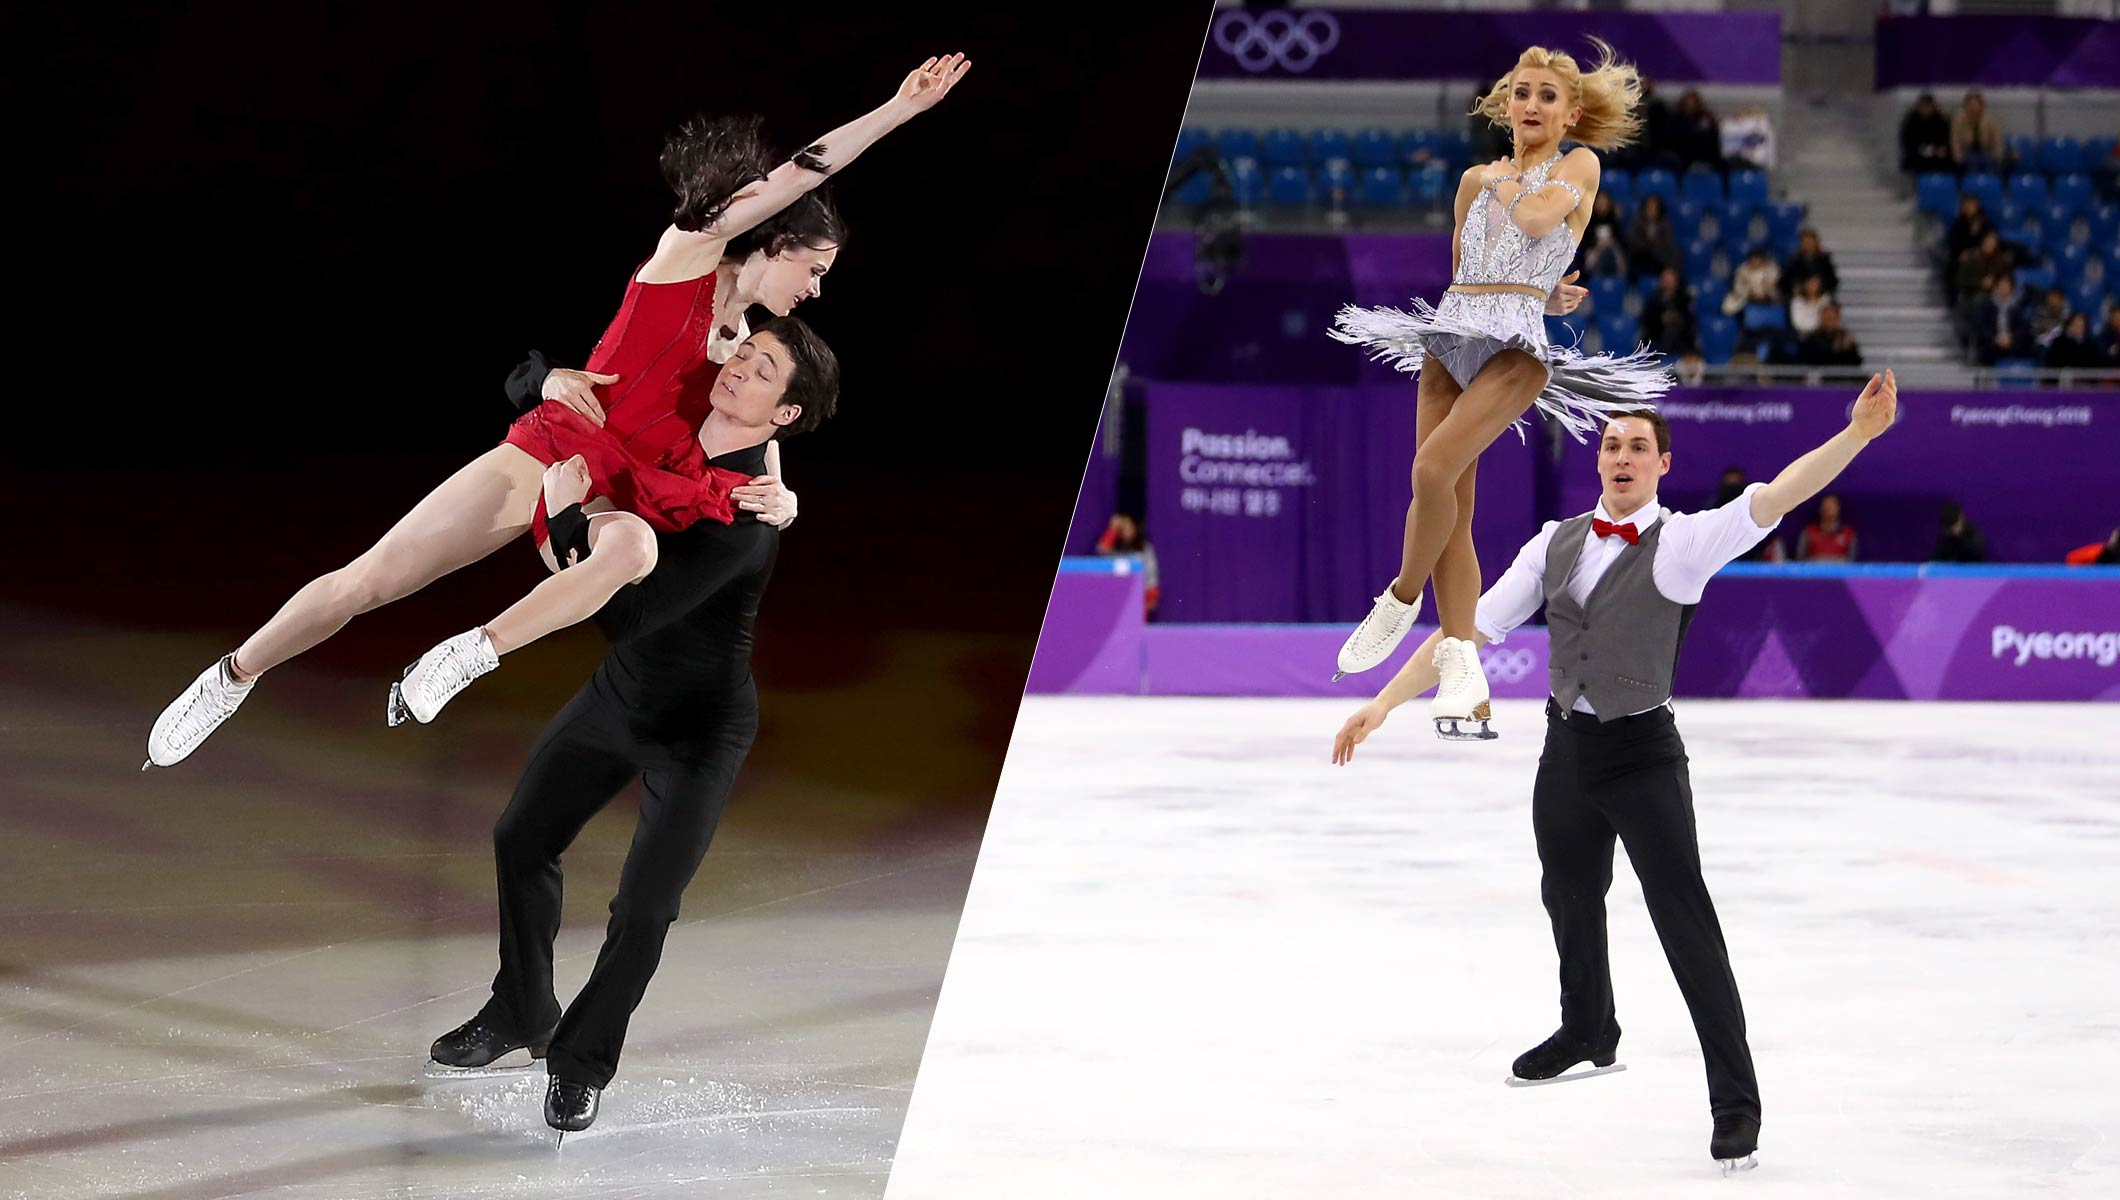 Which Pairs Figure Skating And Ice Dancing Couples Are: Virtue And Moir Strike Double Gold, Savchenko And Massot